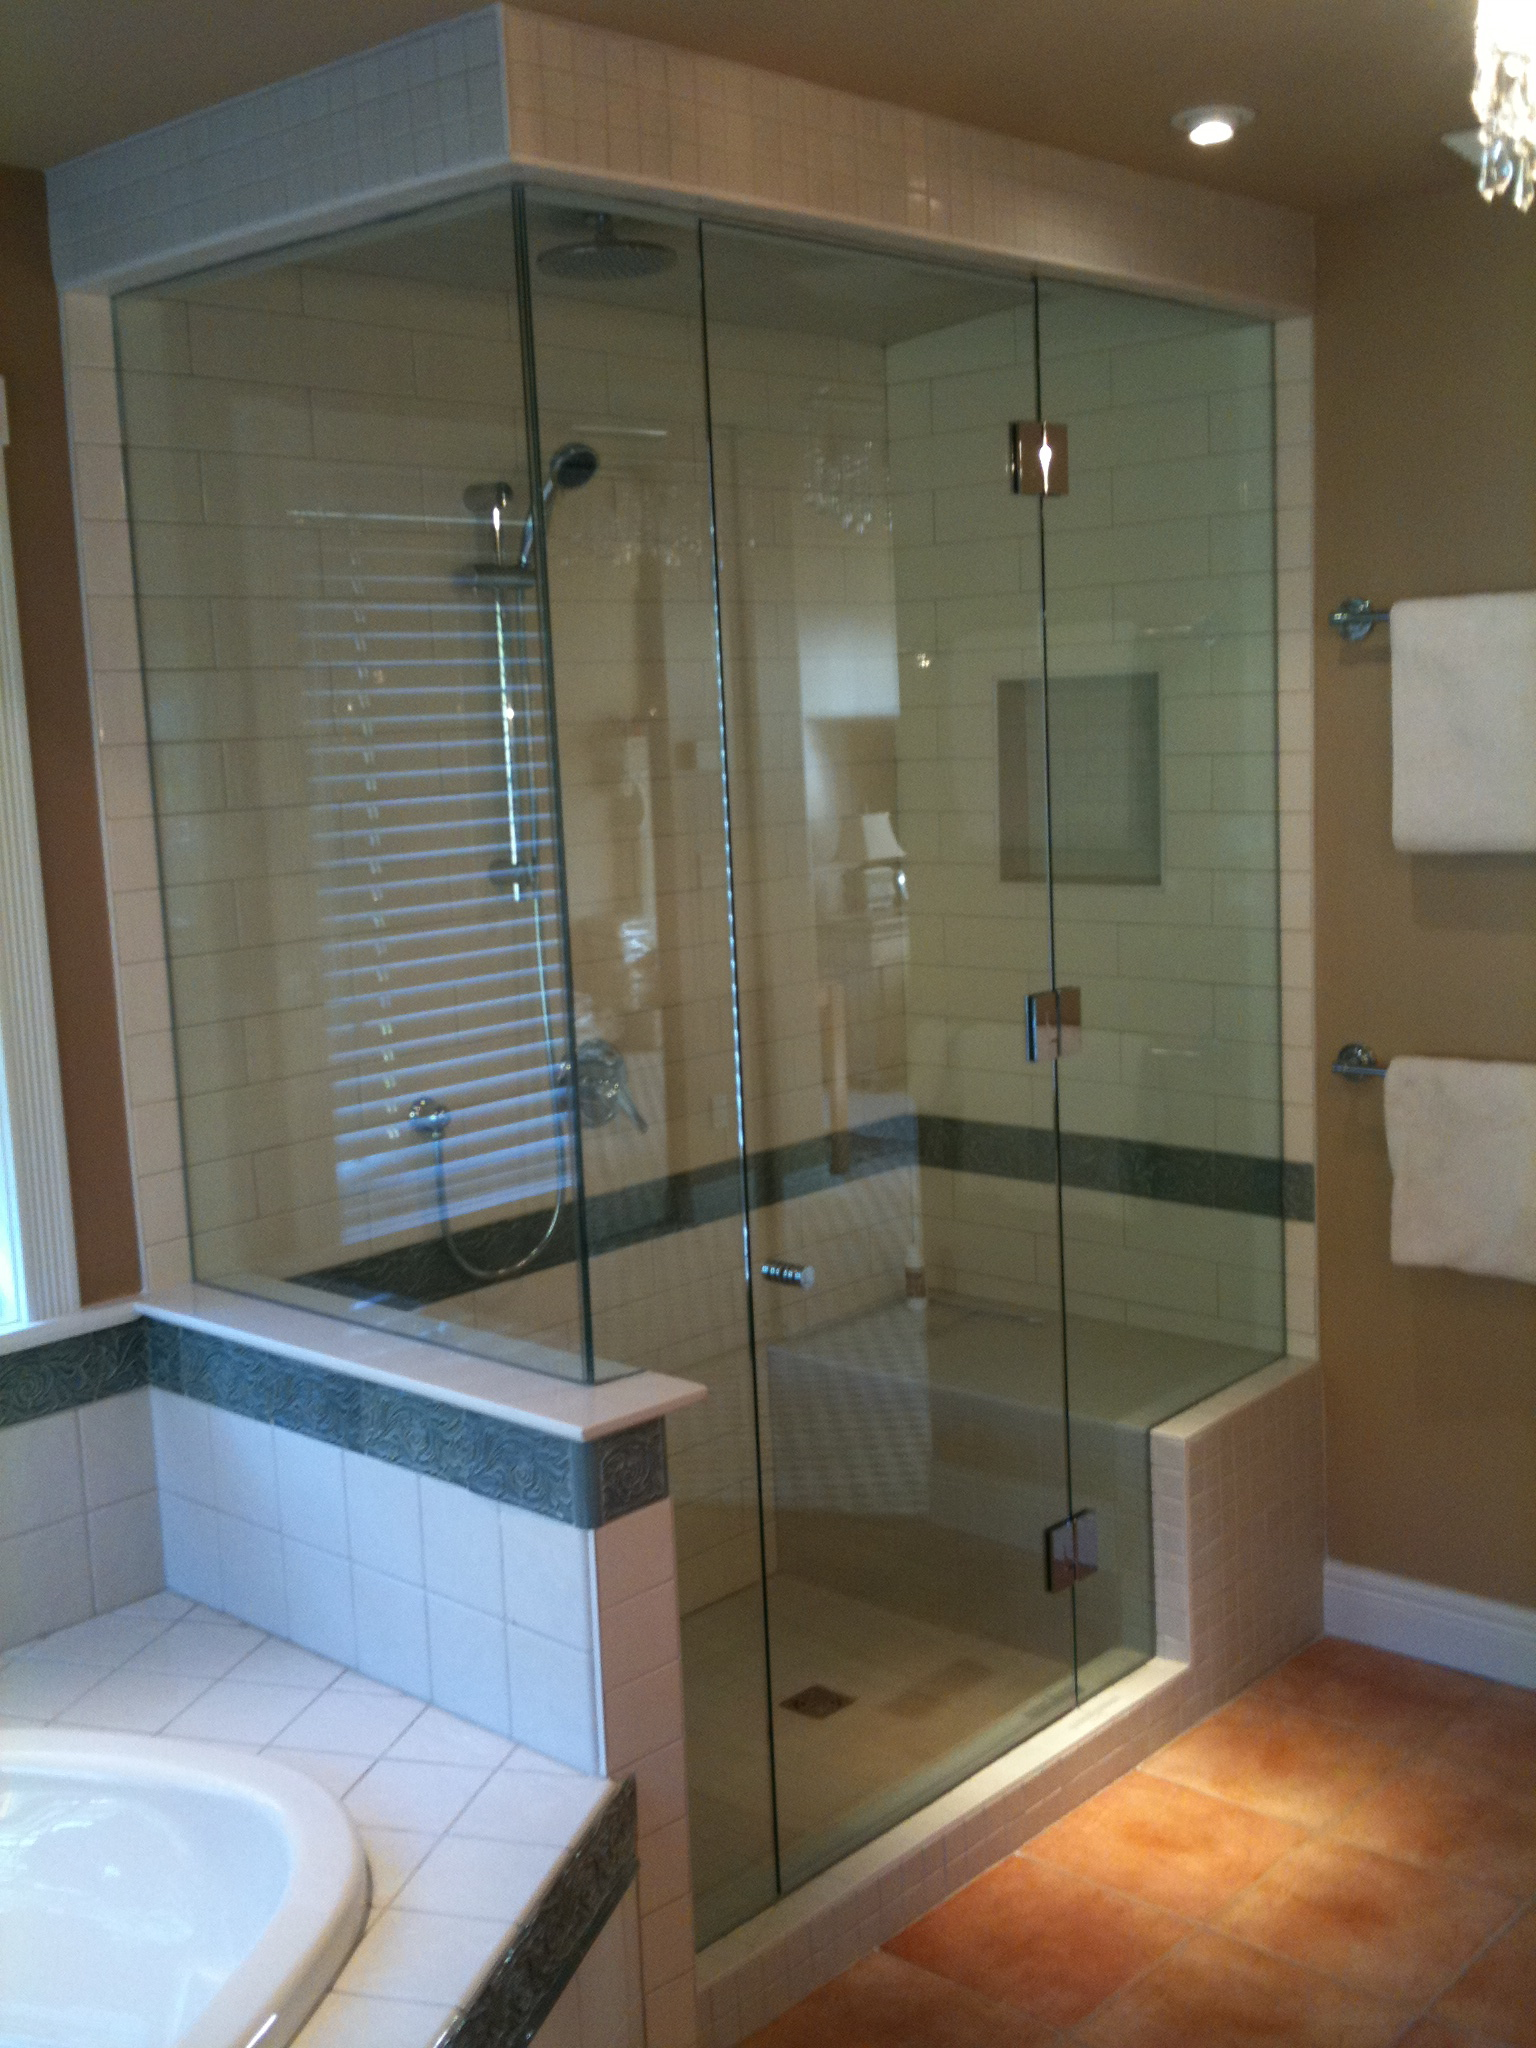 Bathroom Renovations Heilman Renovations North Vancouver Renovation Contractor